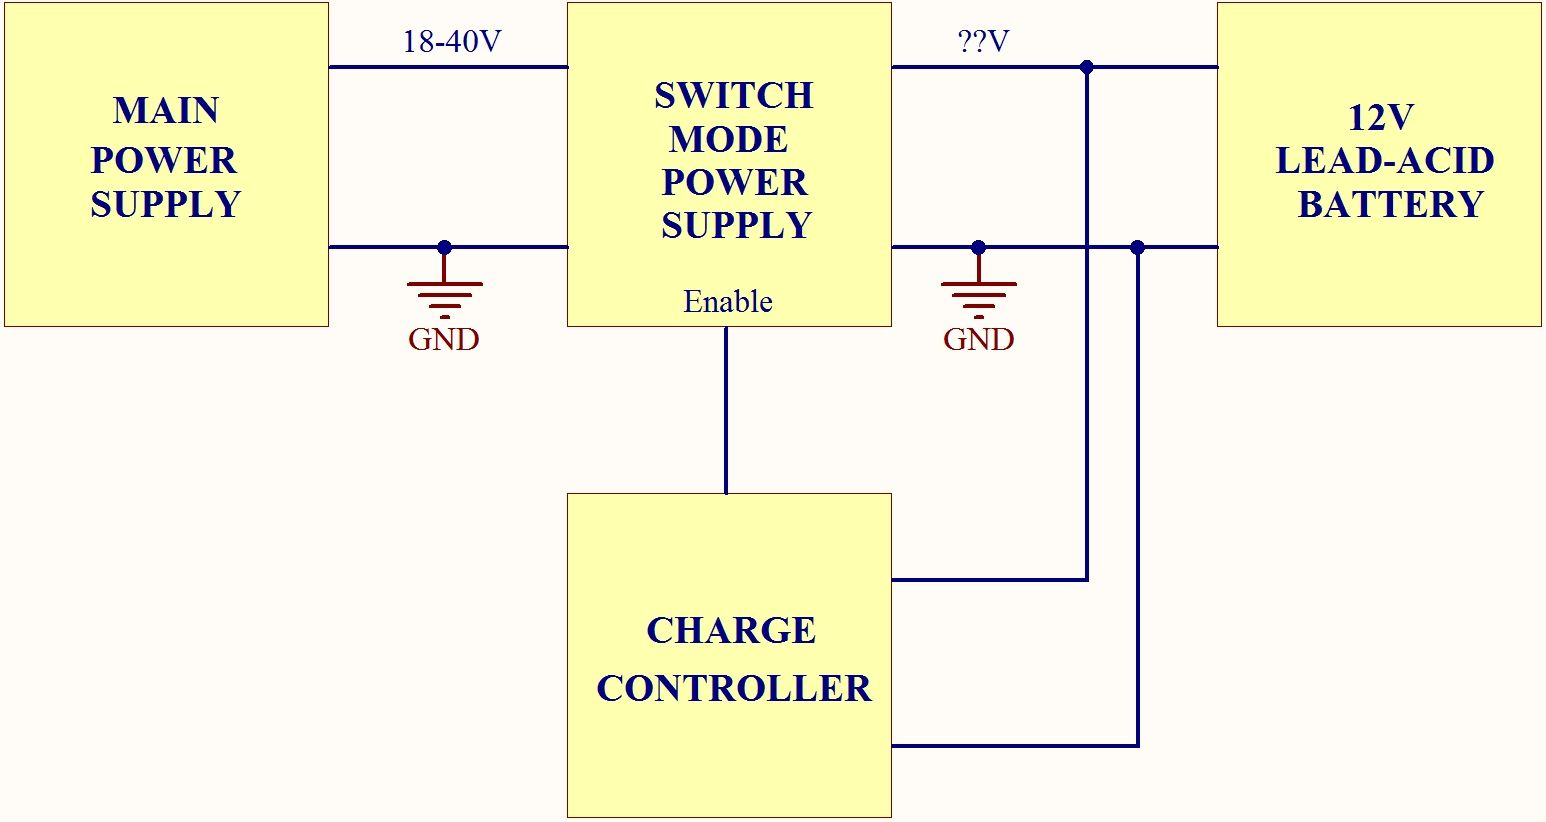 Wiring Diagram For Charging Of A Lead Acid Battery Wiringdiagram Toyota Coaster Wiringdiagramorg